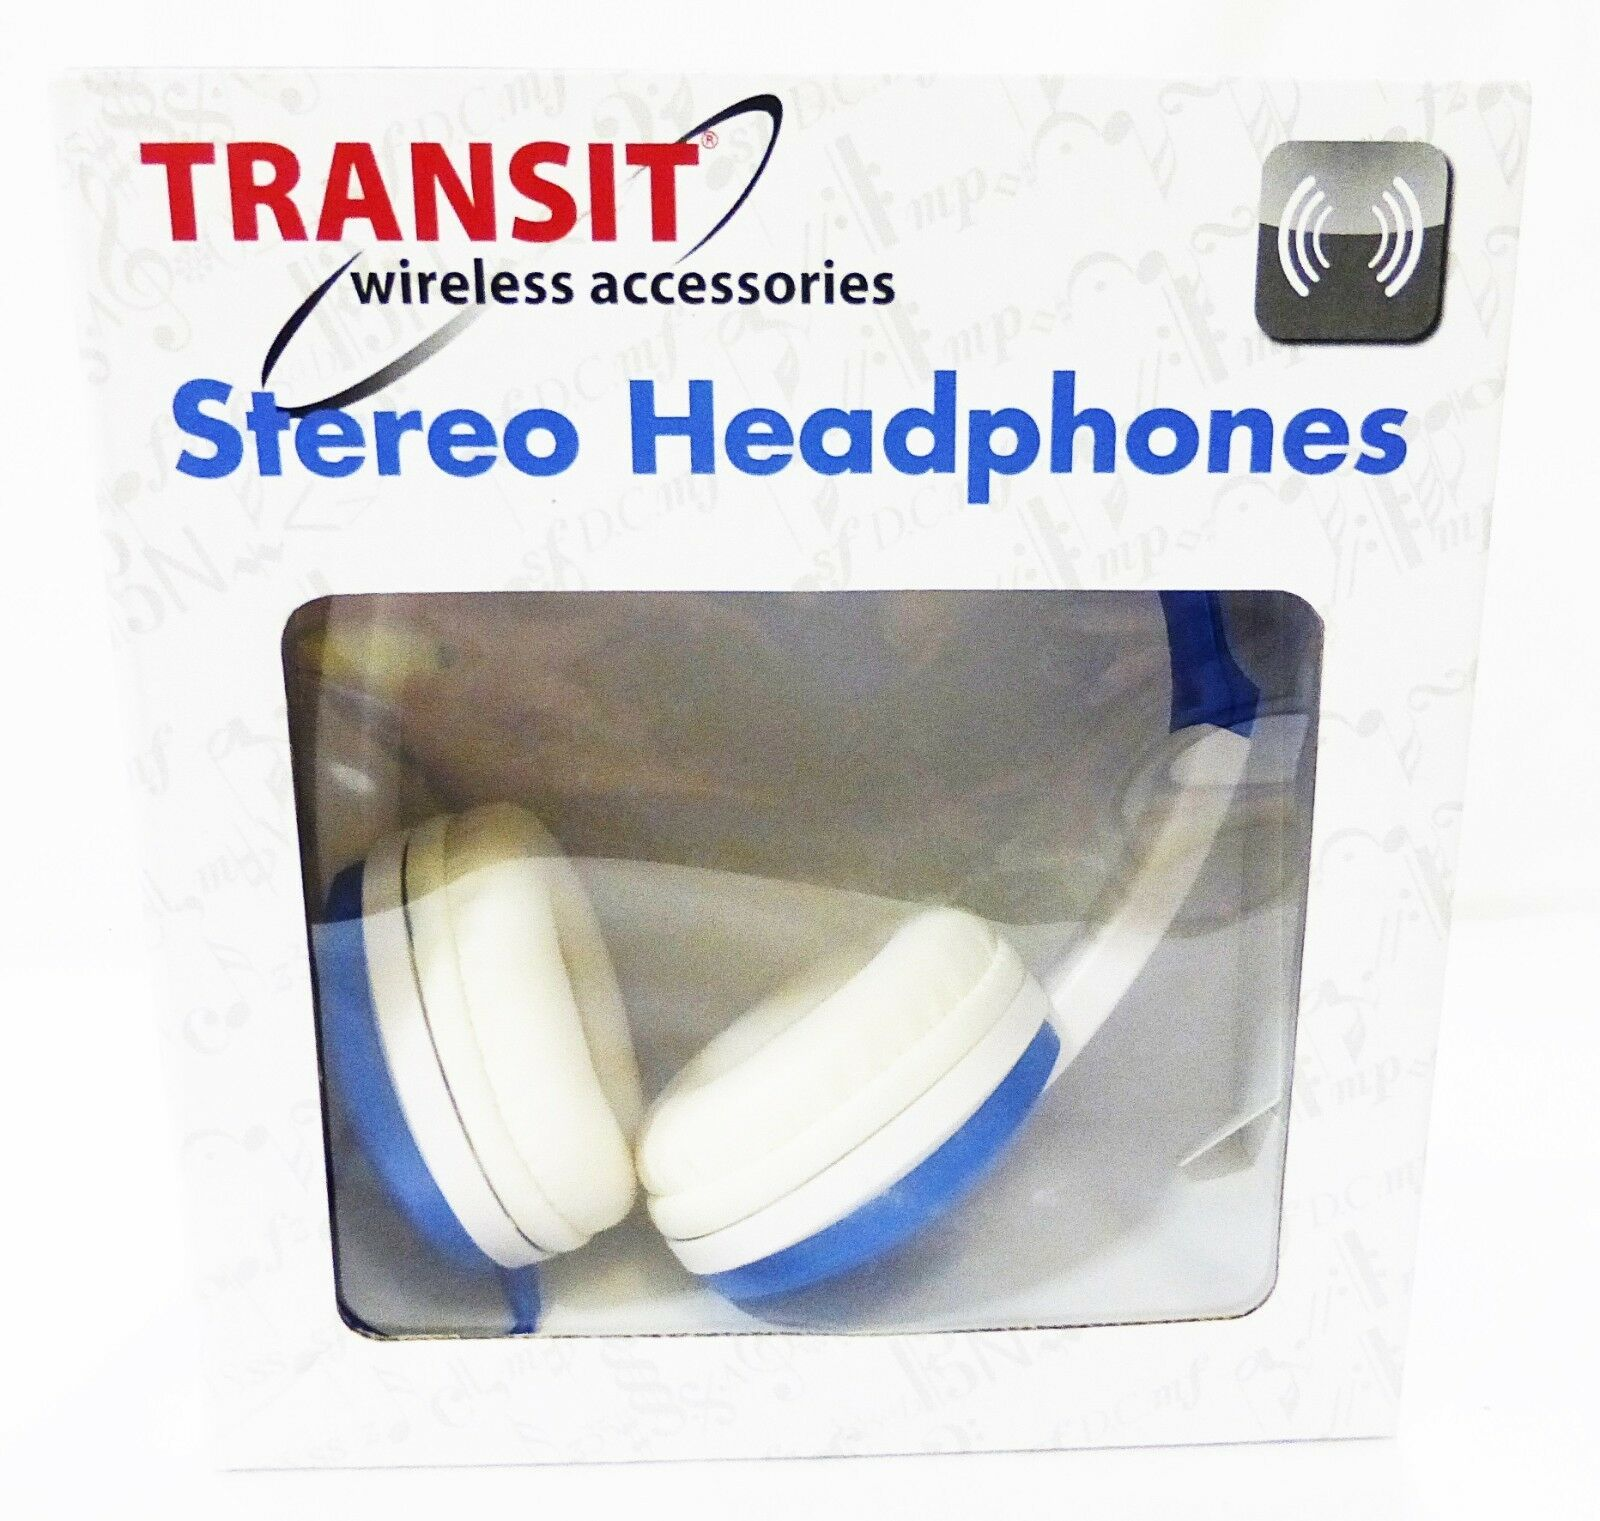 Primary image for headphones stereo Transit wireless accessories blue flexible